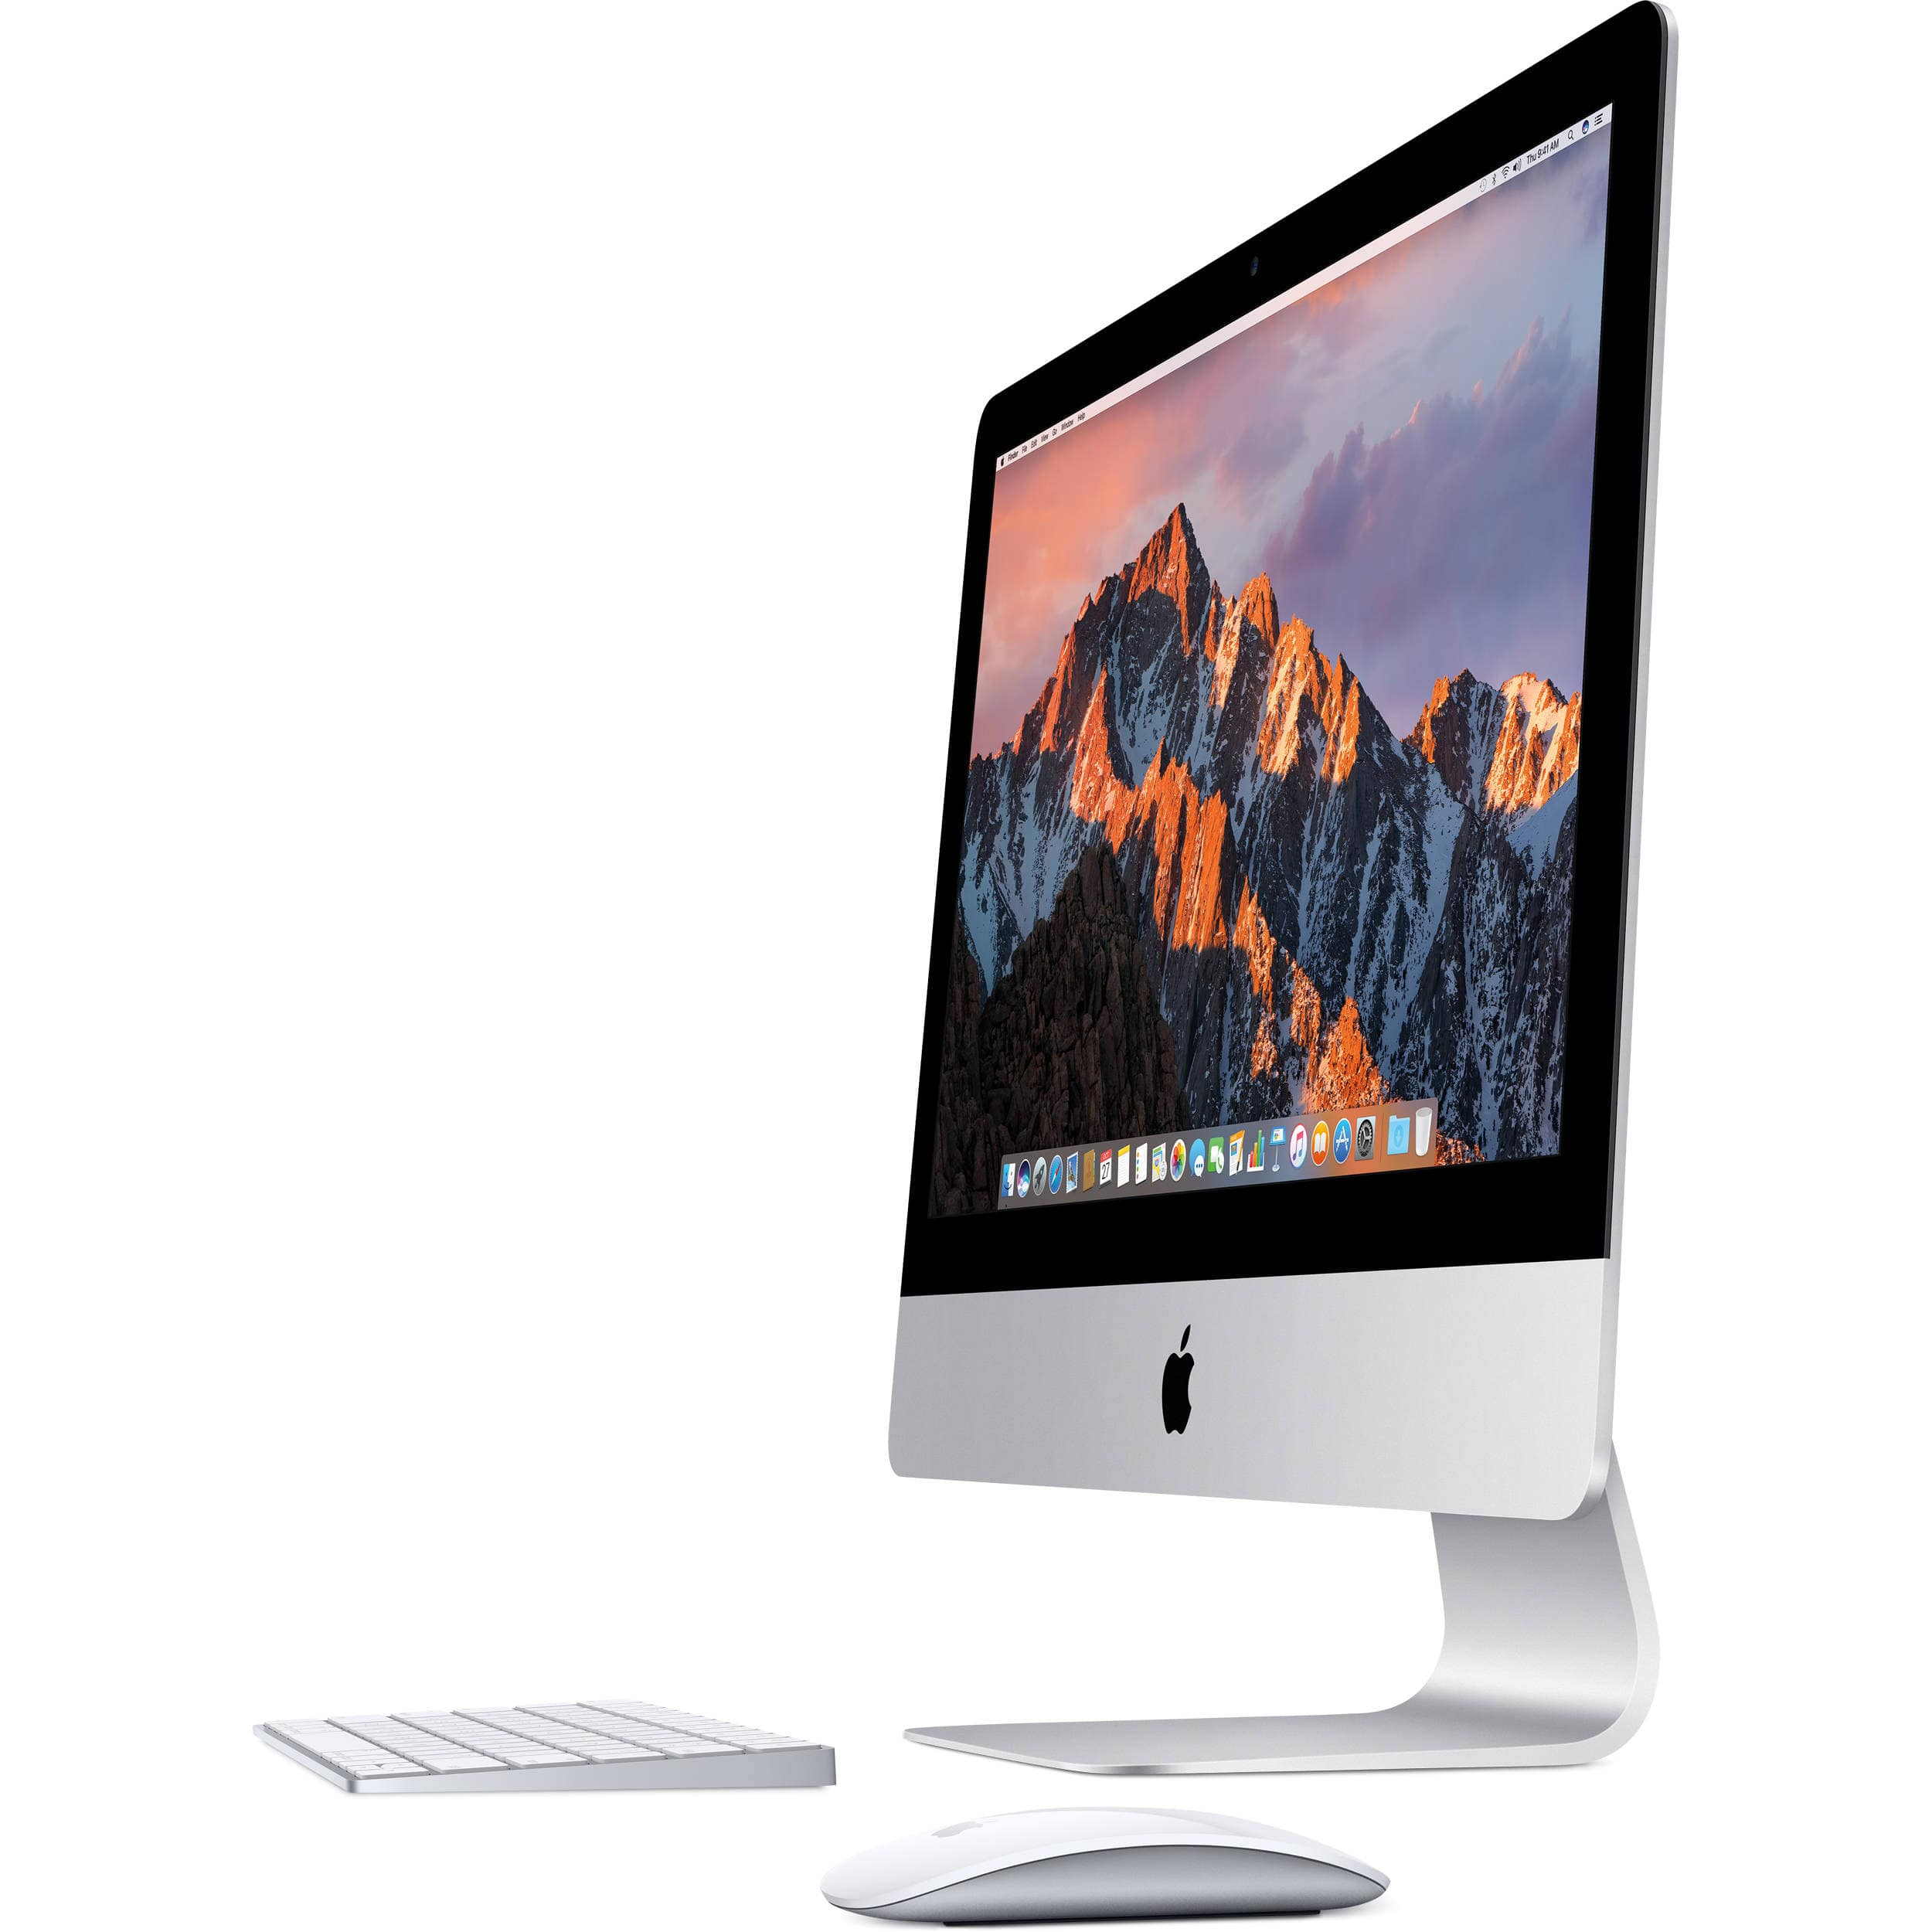 "Apple - 21.5"" iMac® (Latest Model) - Intel Core i5 (3.4GHz) - 8GB Memory - 1TB Fusion Drive - Silver $1249.99"